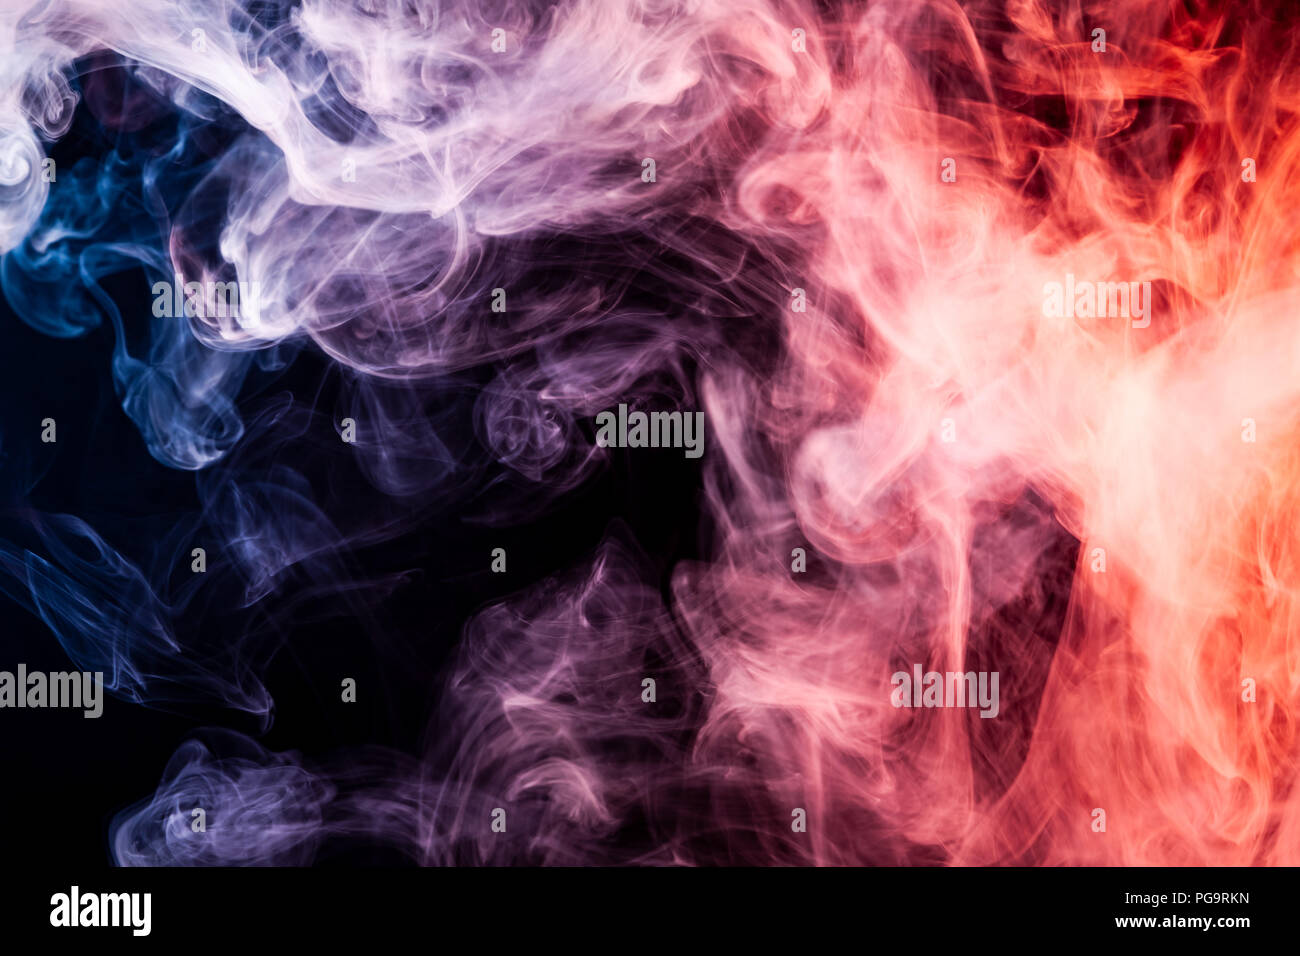 colorful red blue and white smoke on a black isolated background background from the smoke of vape stock photo alamy https www alamy com colorful redblue and white smoke on a black isolated background background from the smoke of vape image216575065 html